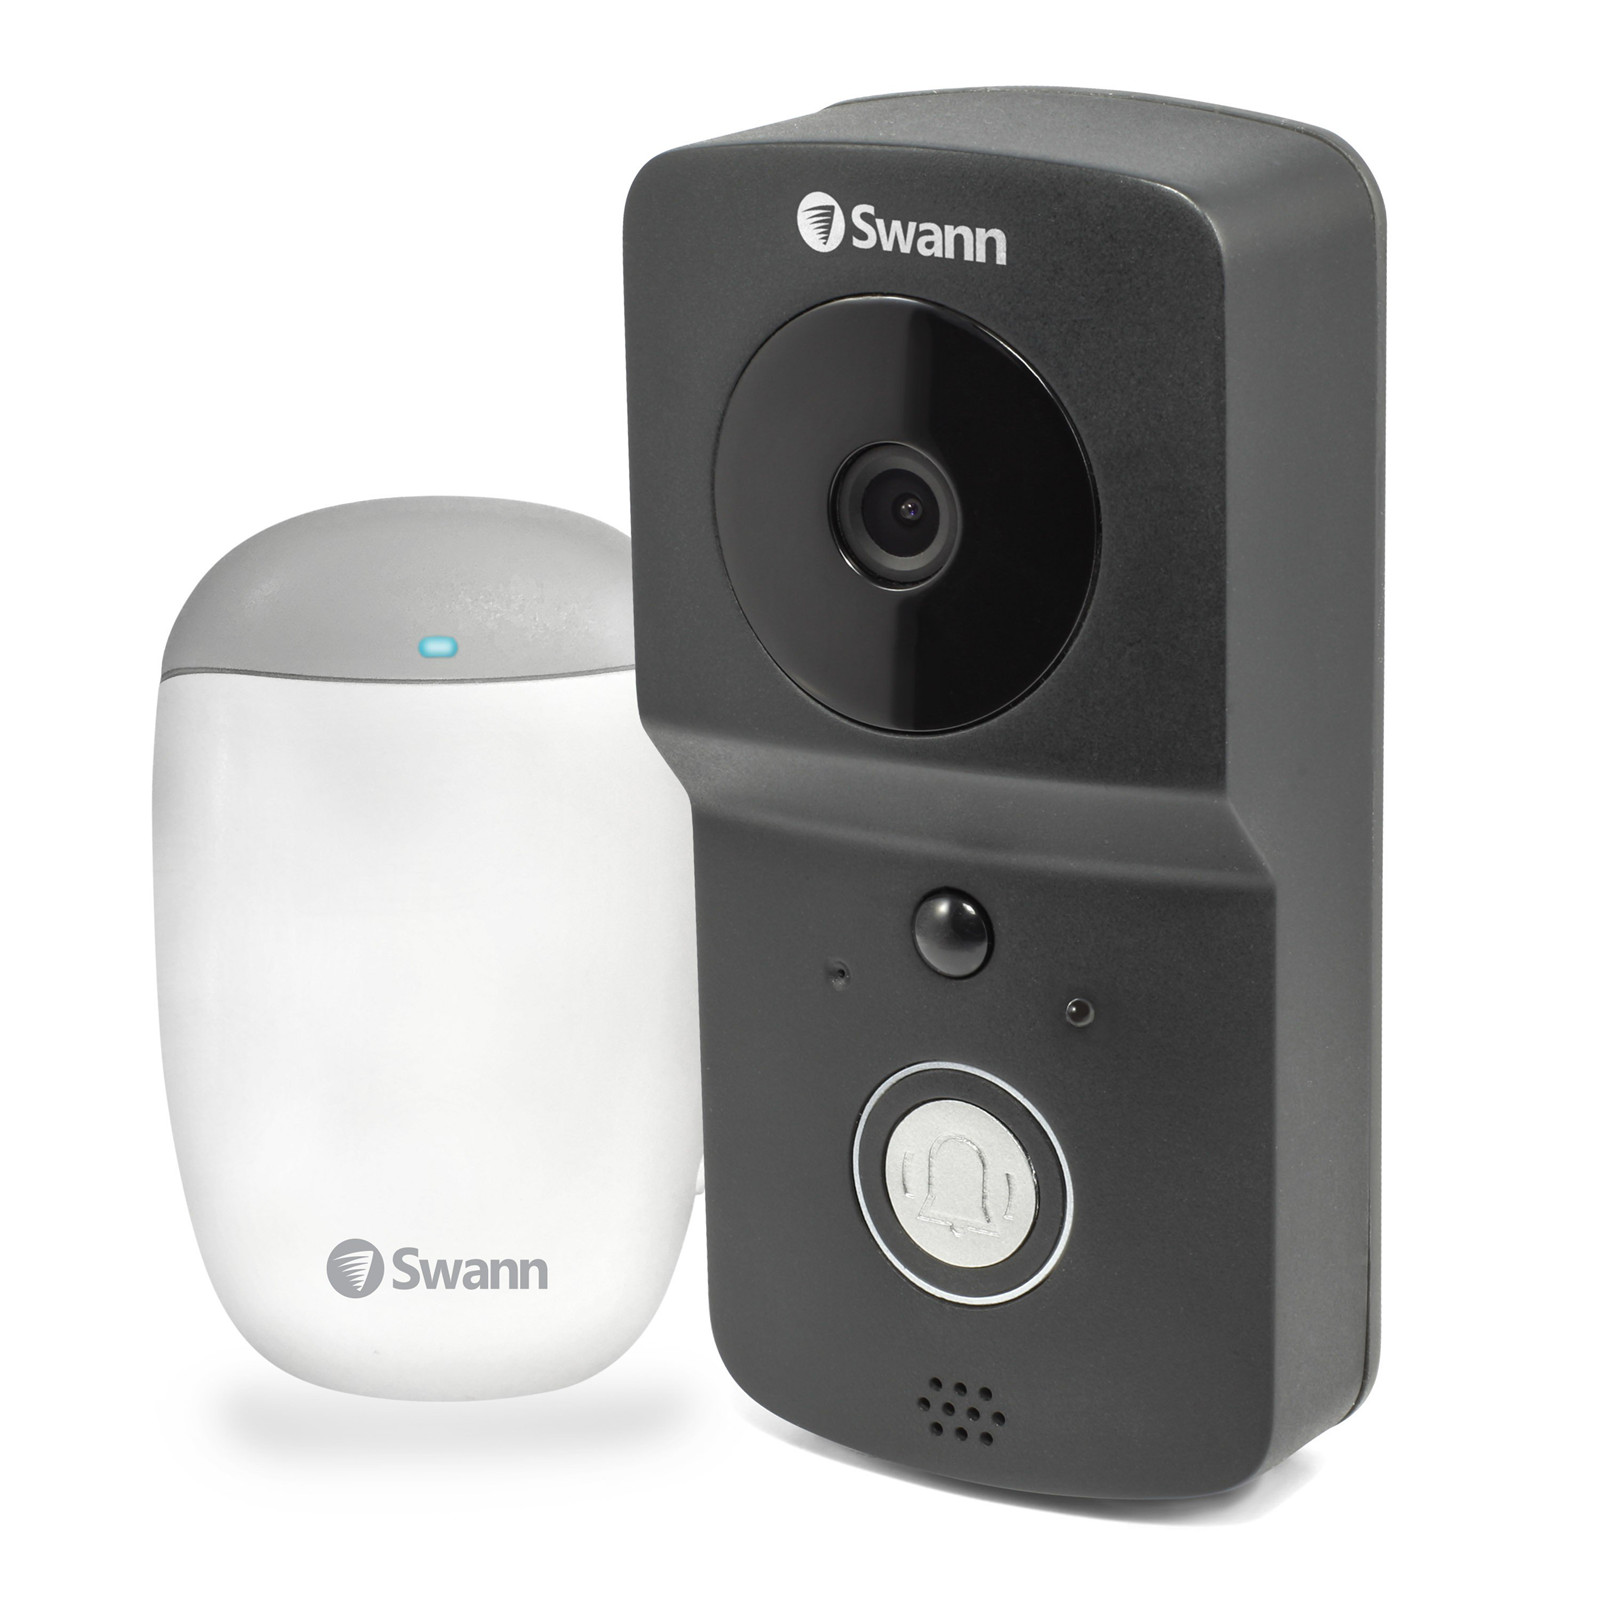 Buy The Swann Wire Free 720p Hd Smart Video Doorbell Kit With Chime Wiring A Honeywell Unit